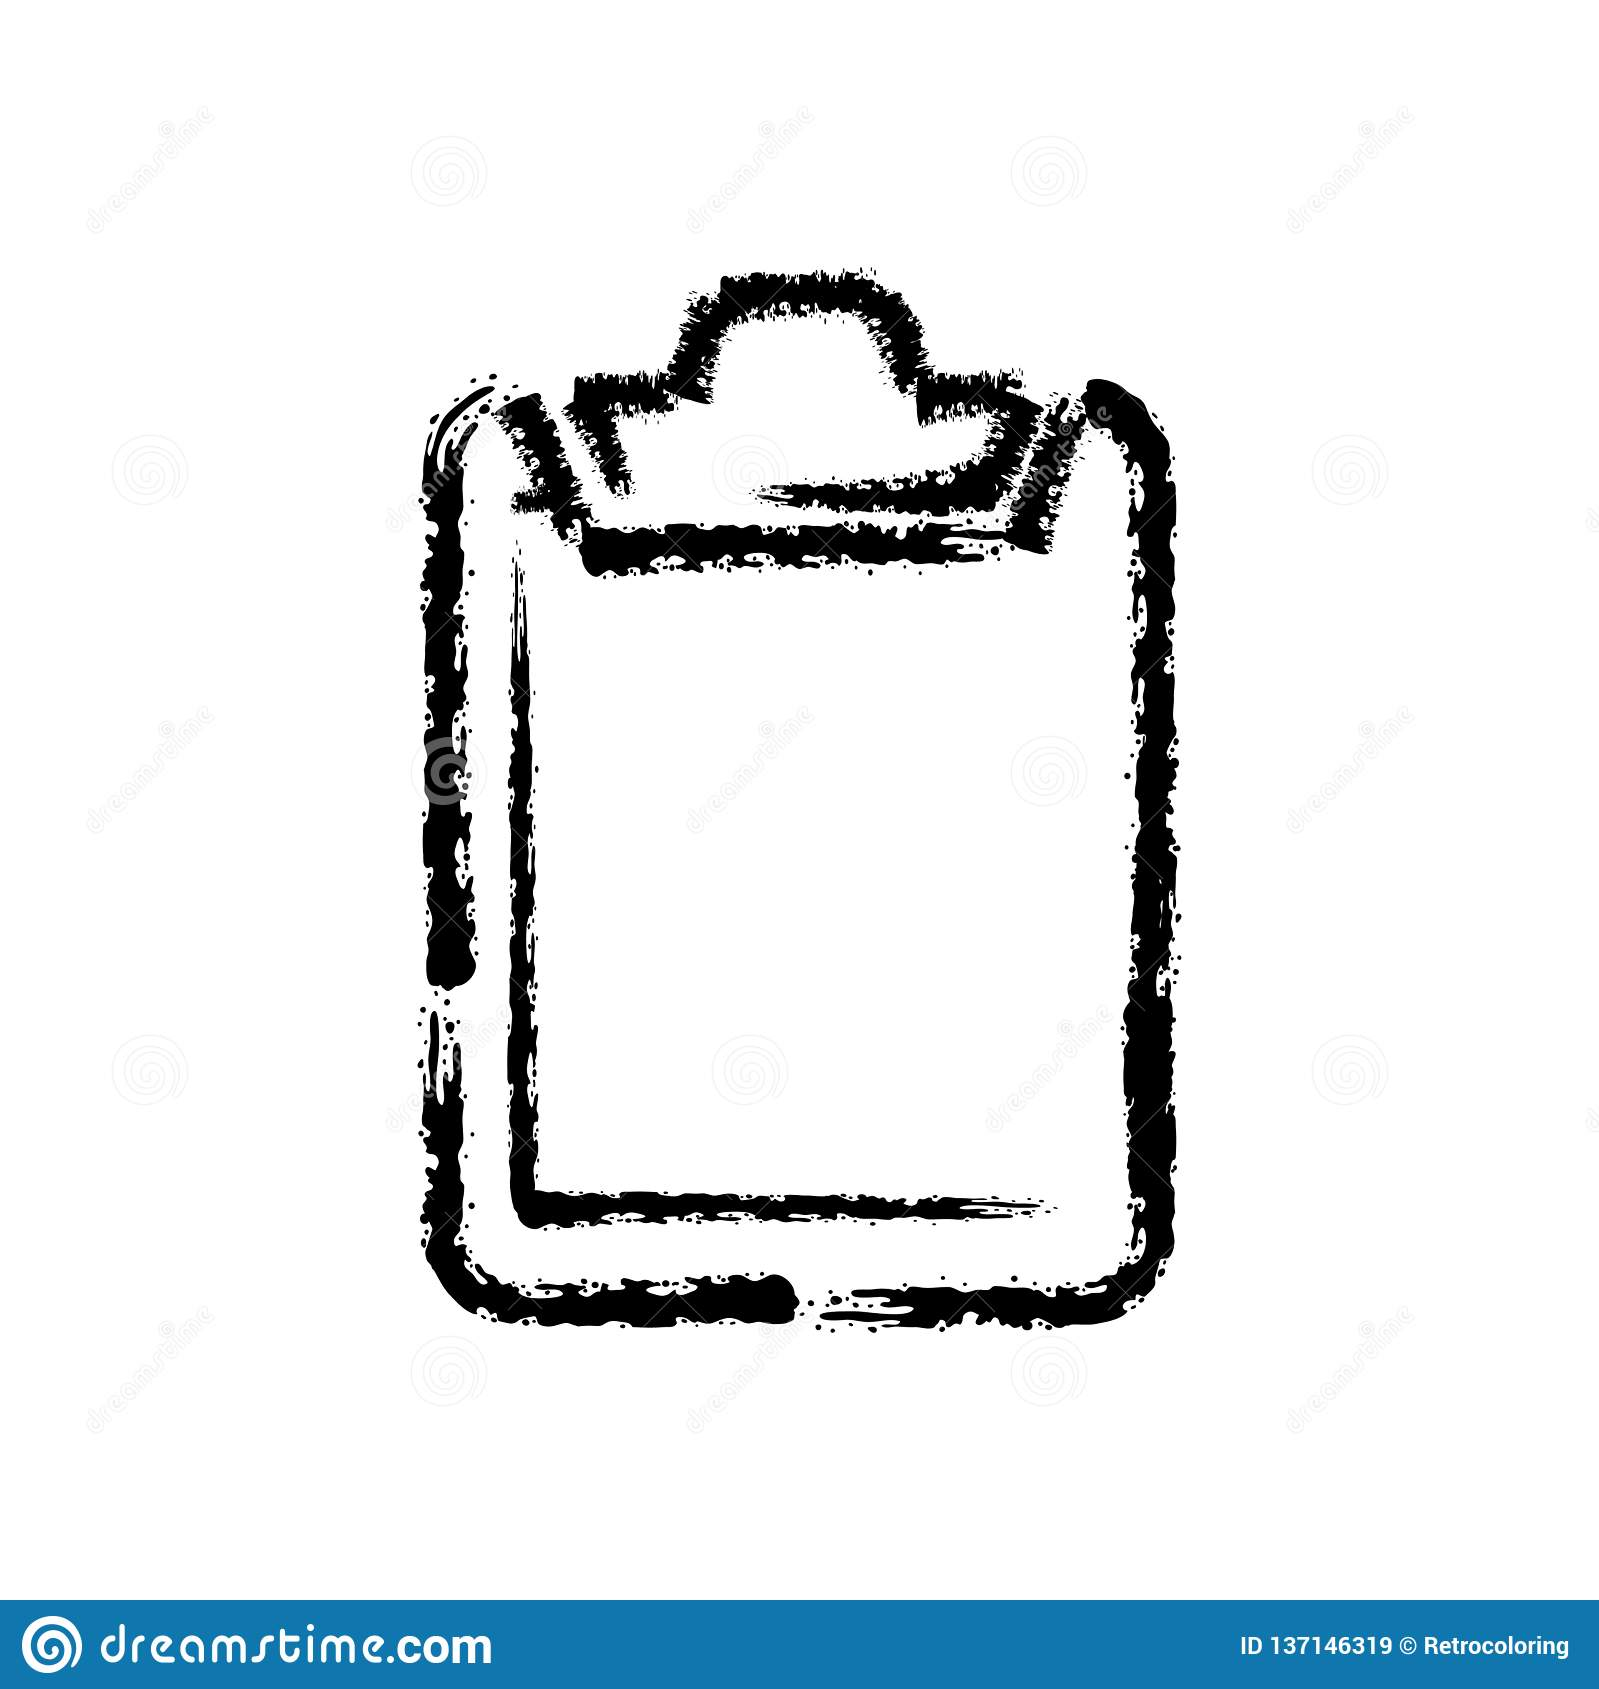 Brush stroke hand drawn icon of clipboard